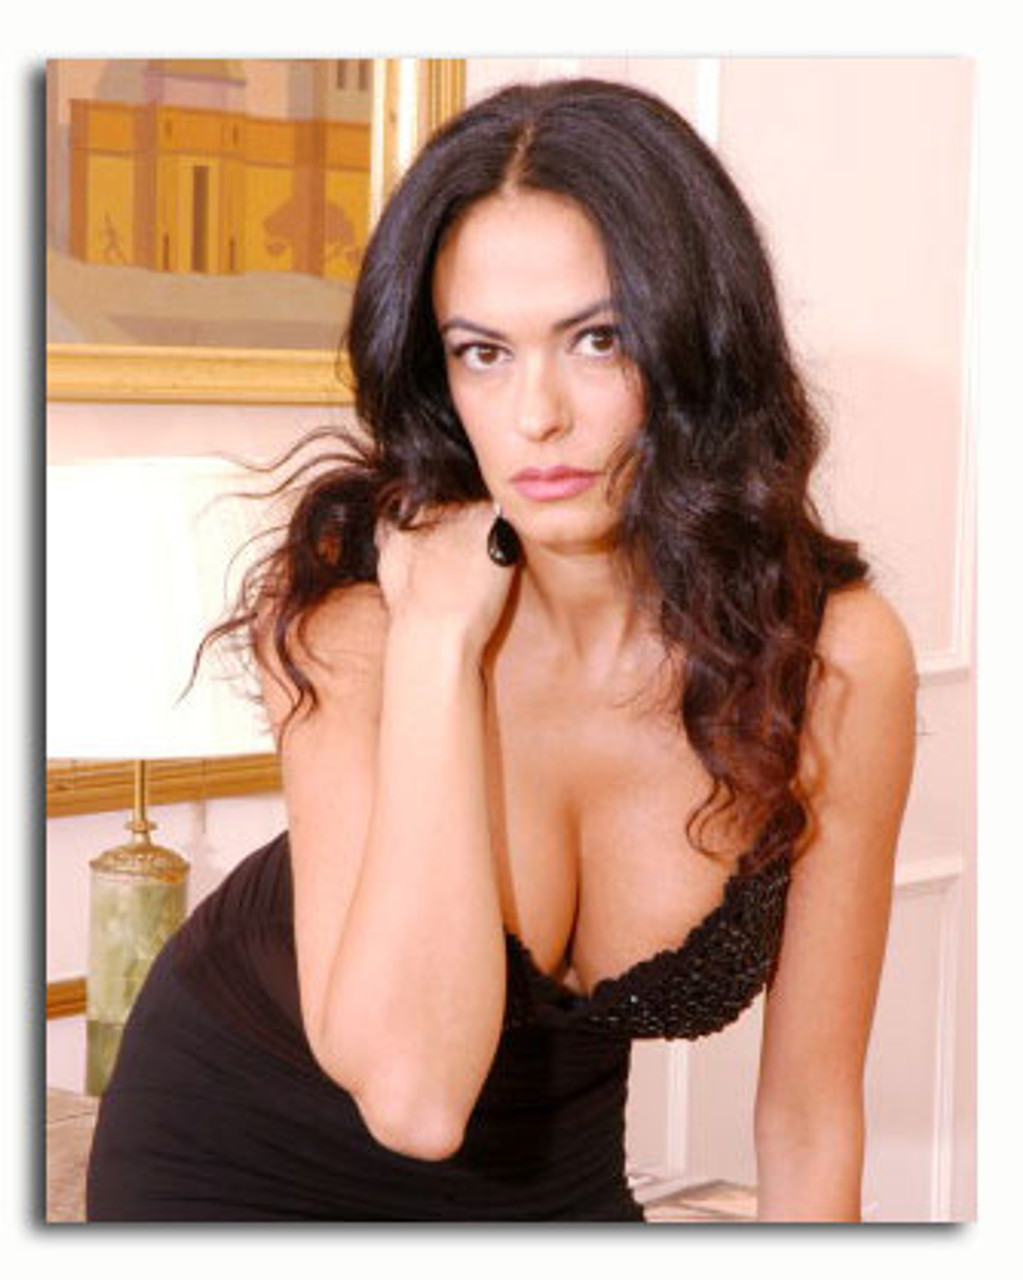 ss3534752_-_photograph_of_maria_grazia_cucinotta_available_in_4_sizes_framed_or_unframed_buy_now_at_starstills__66453__83047.1394503728.jpg?c=2